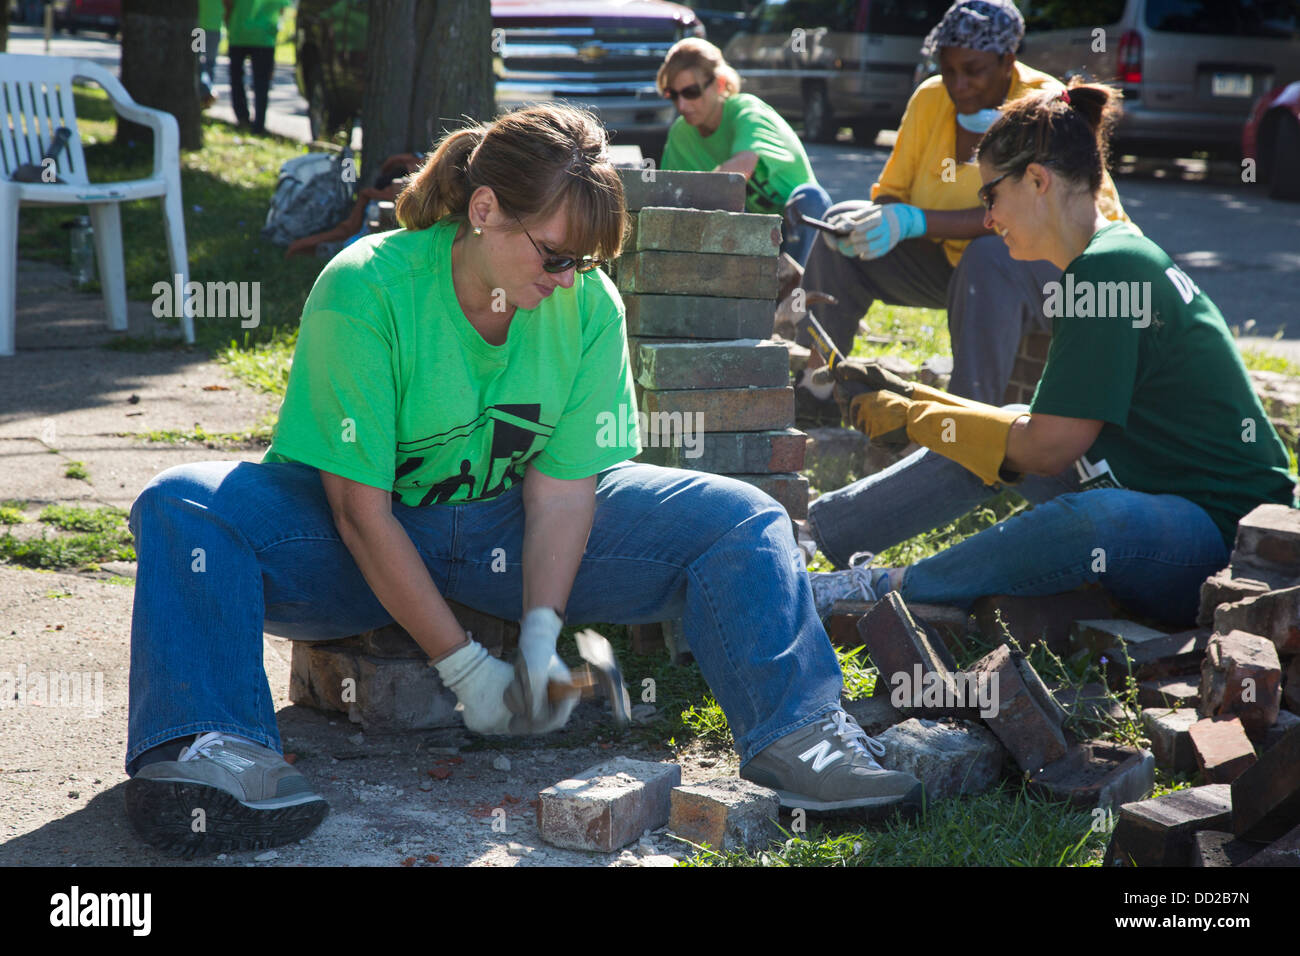 Volunteers participate in community improvement projects in Detroit Stock Photo